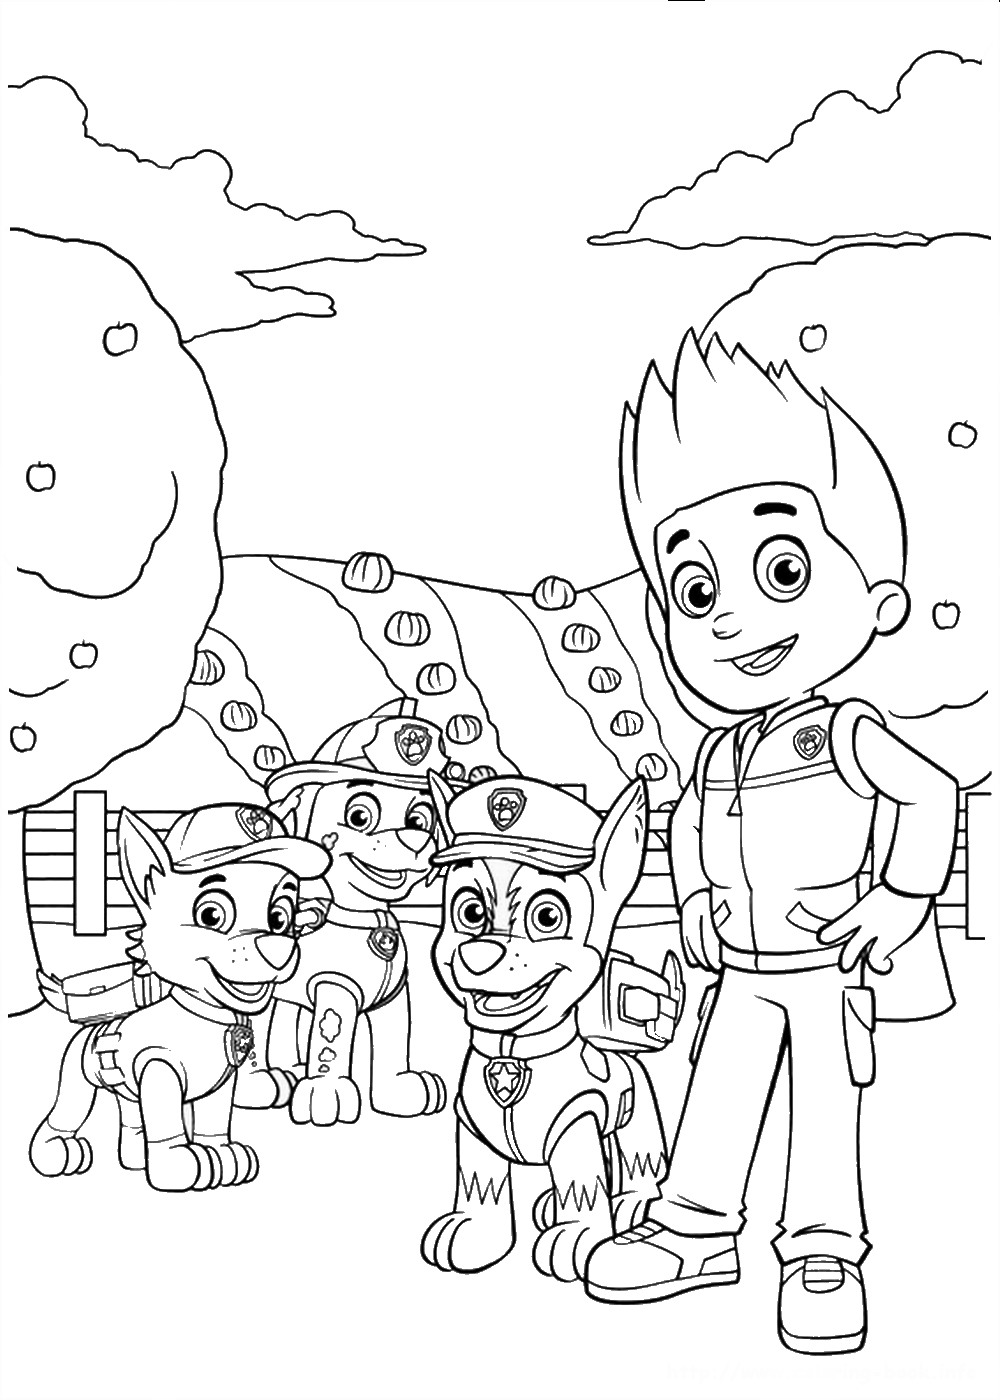 Printable Coloring Pages Of Paw Patrol : Paw patrol colouring pages